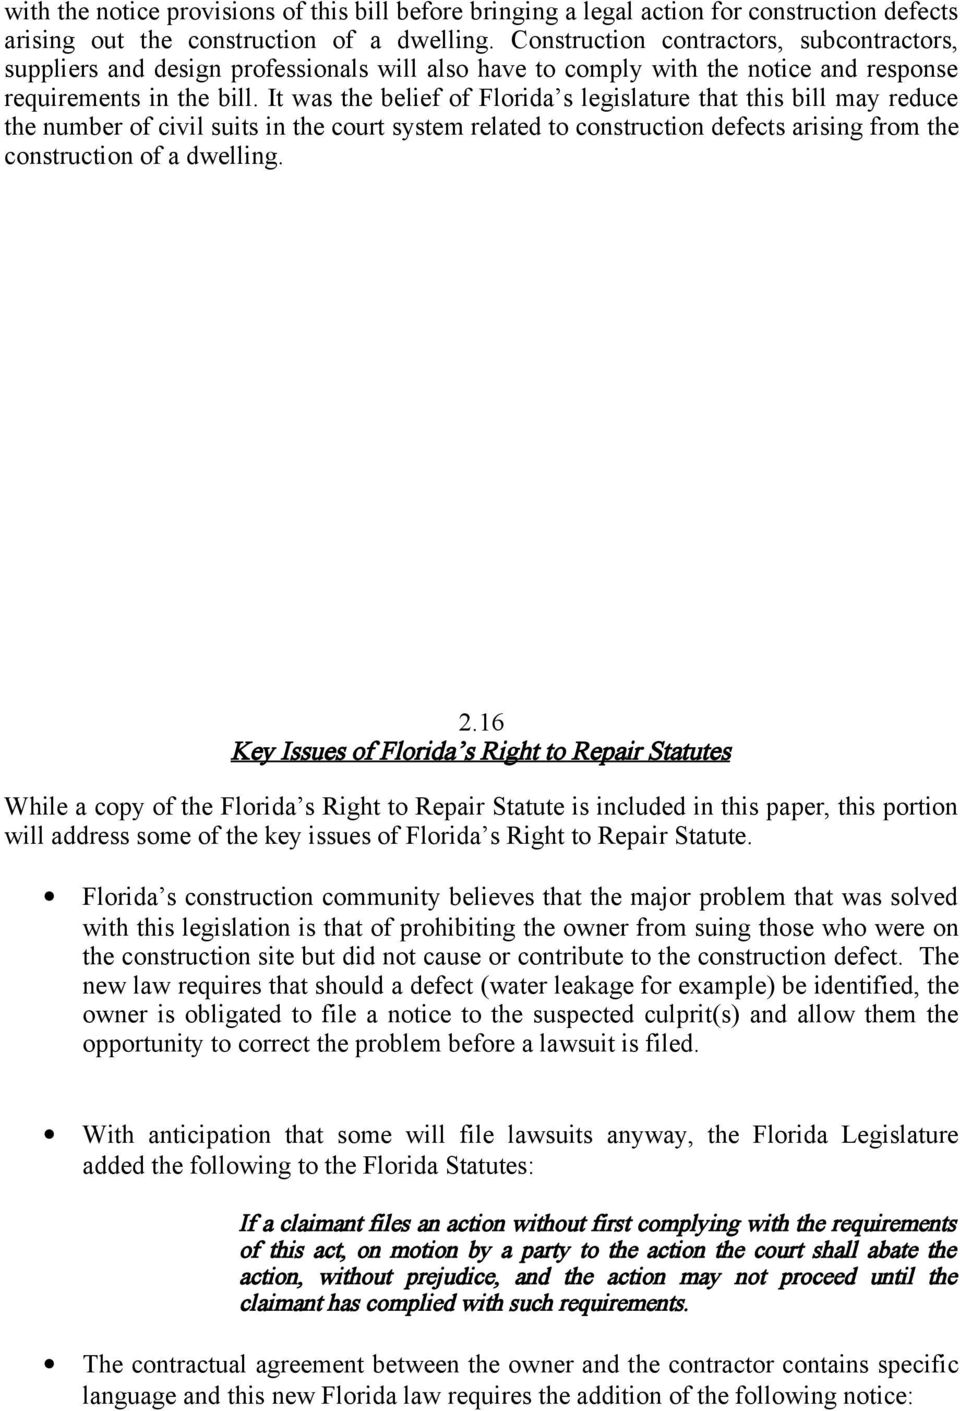 It was the belief of Florida s legislature that this bill may reduce the number of civil suits in the court system related to construction defects arising from the construction of a dwelling. 2.